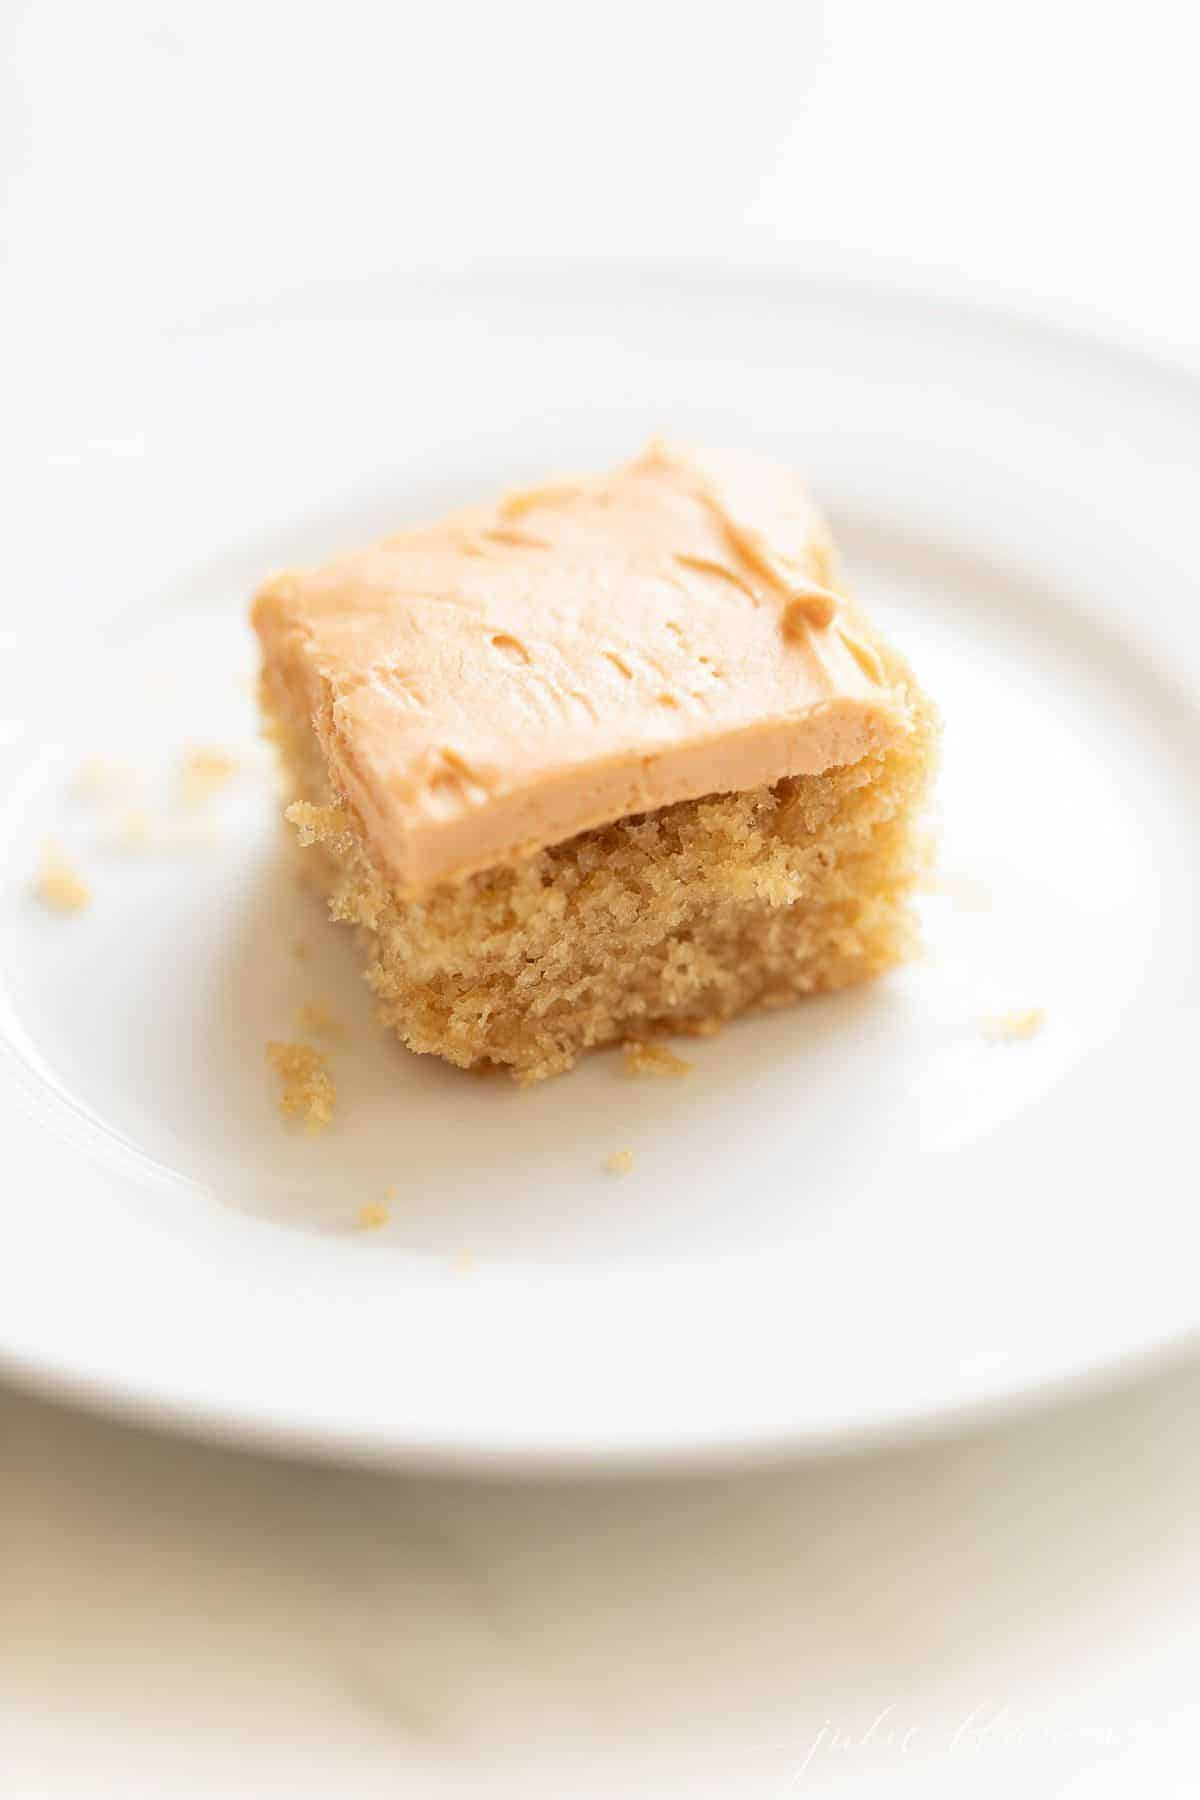 A piece of Butterscotch cake on a white plate, with crumbs surrounding it.